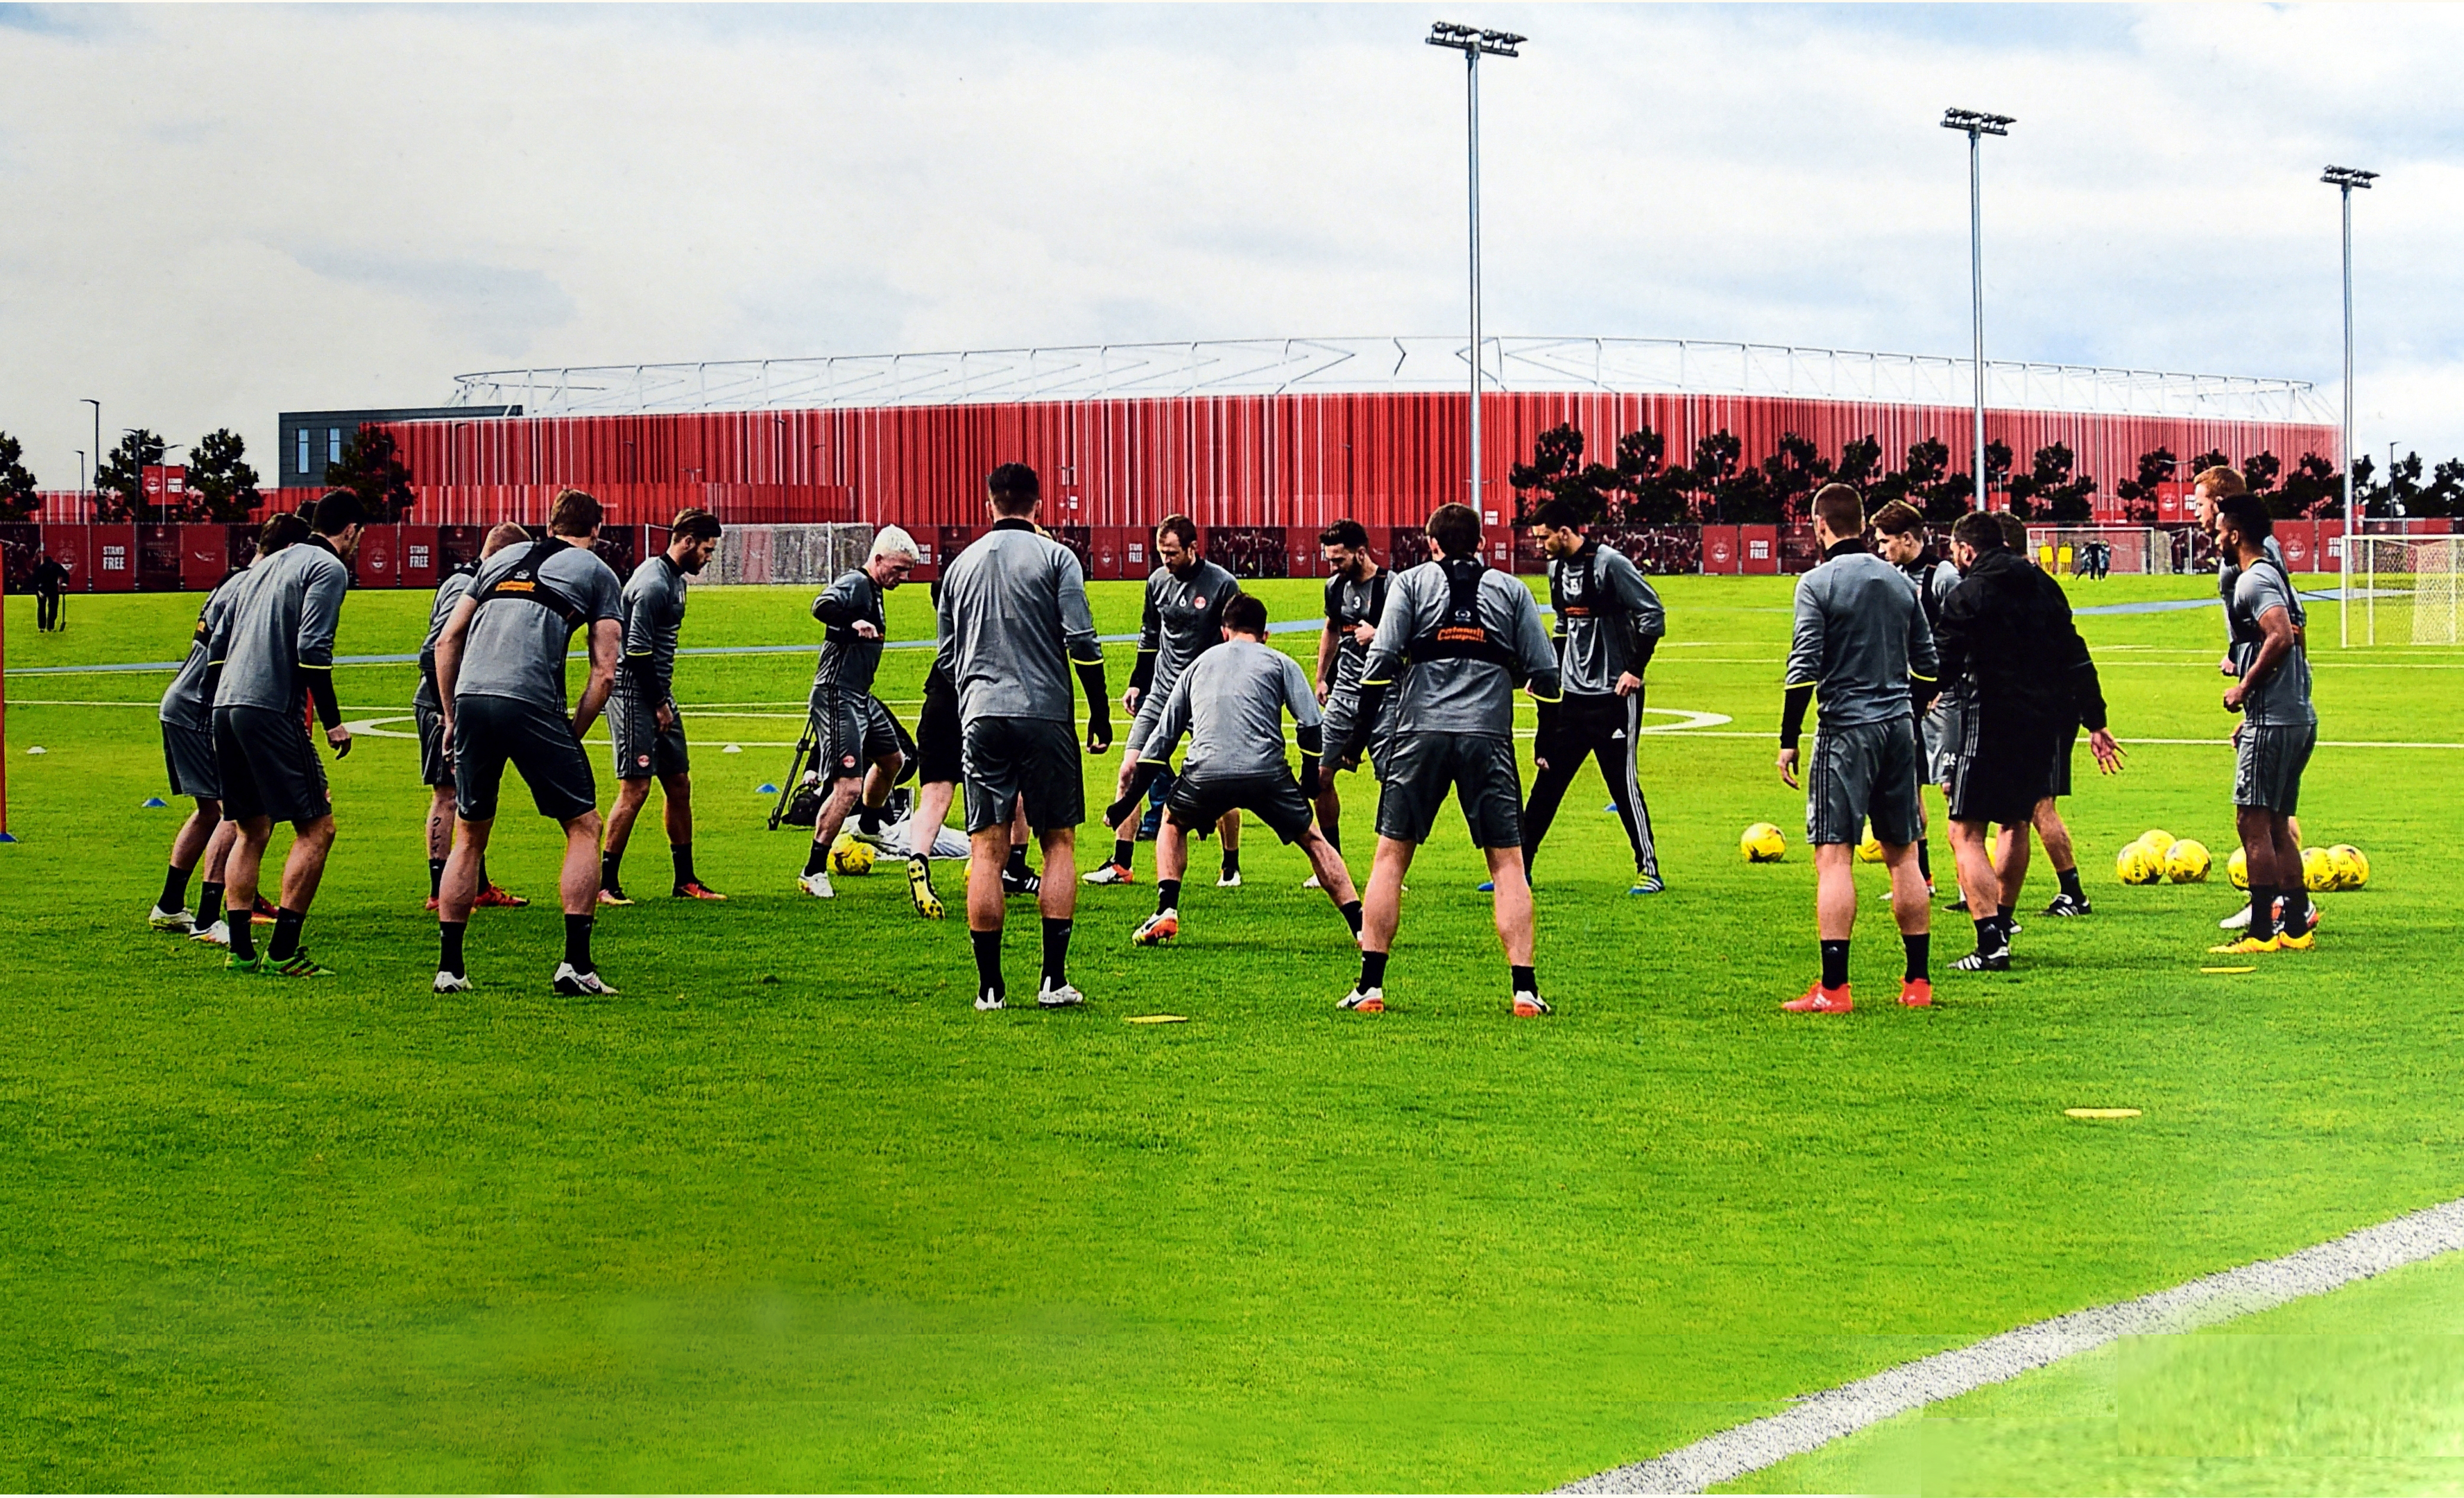 The Dons hope to have their training ground  up and running by 2018.